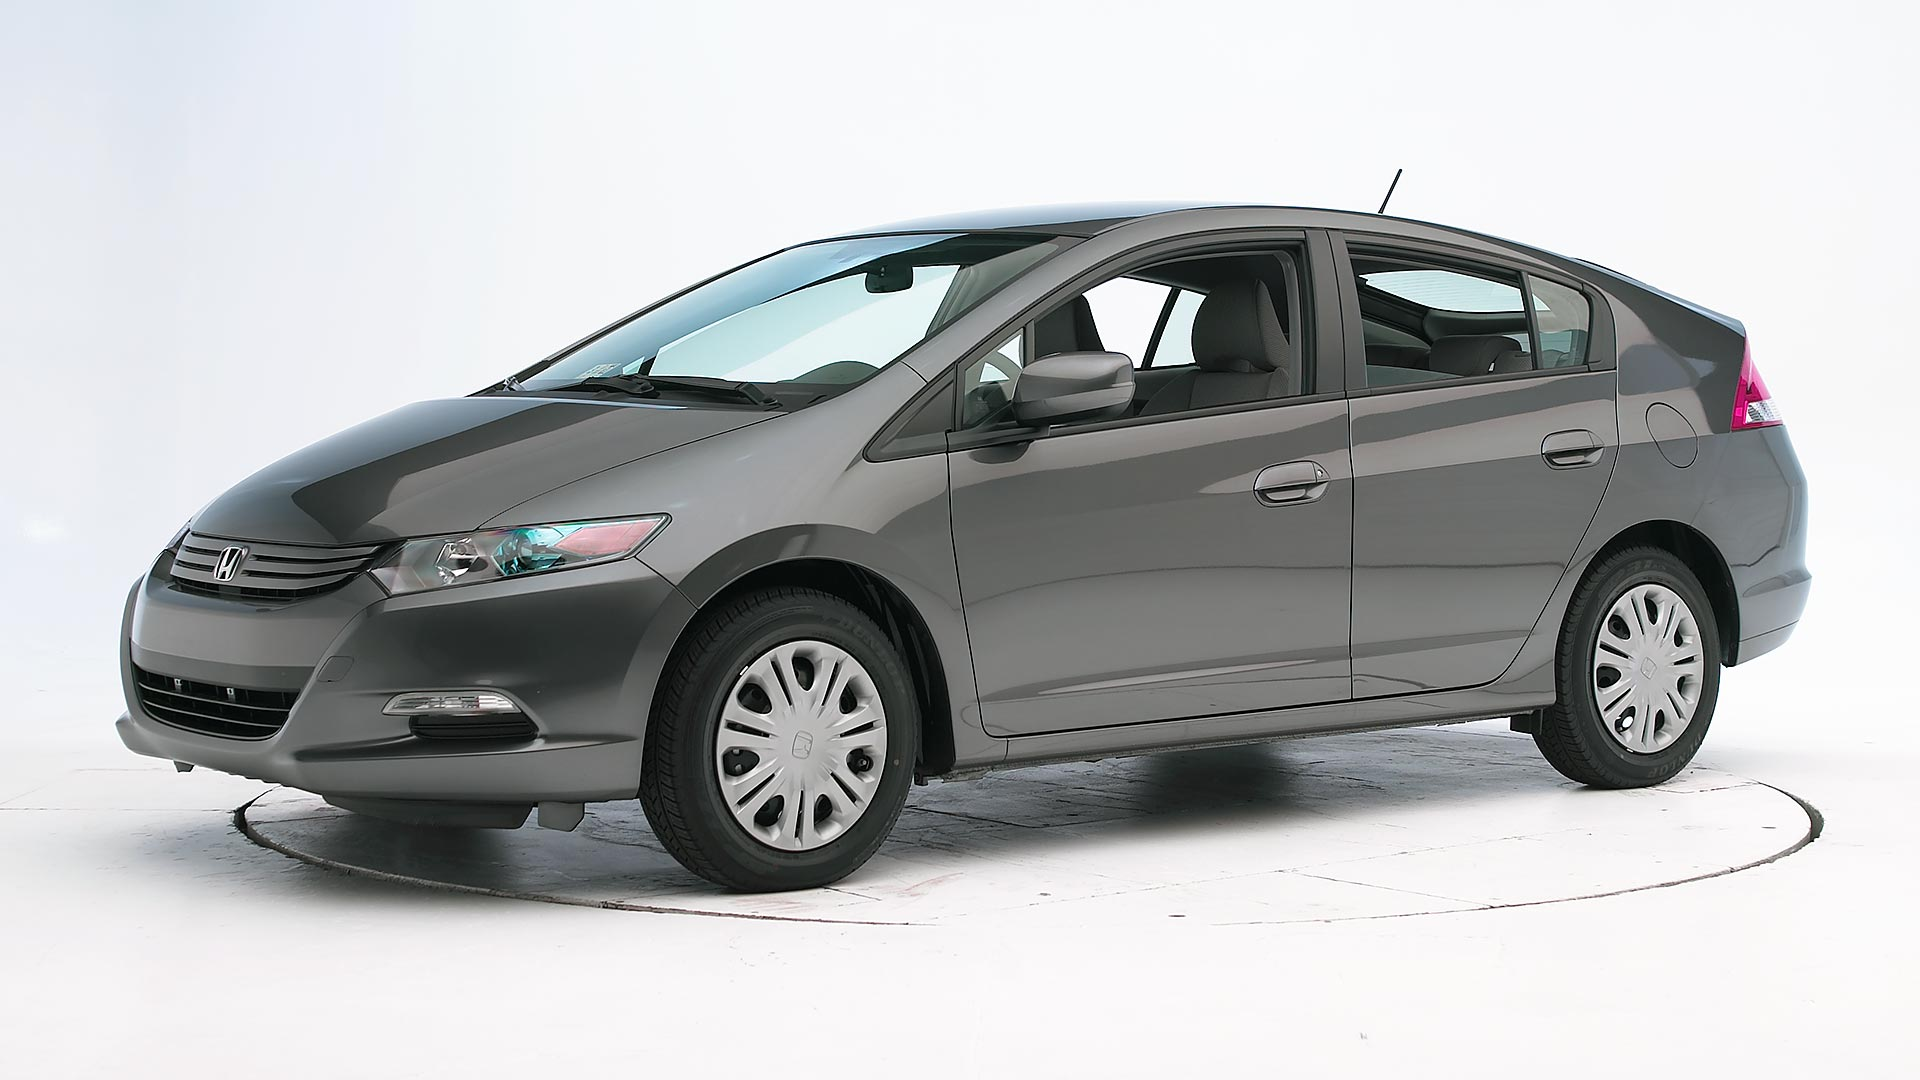 2010 Honda Insight 4-door hatchback